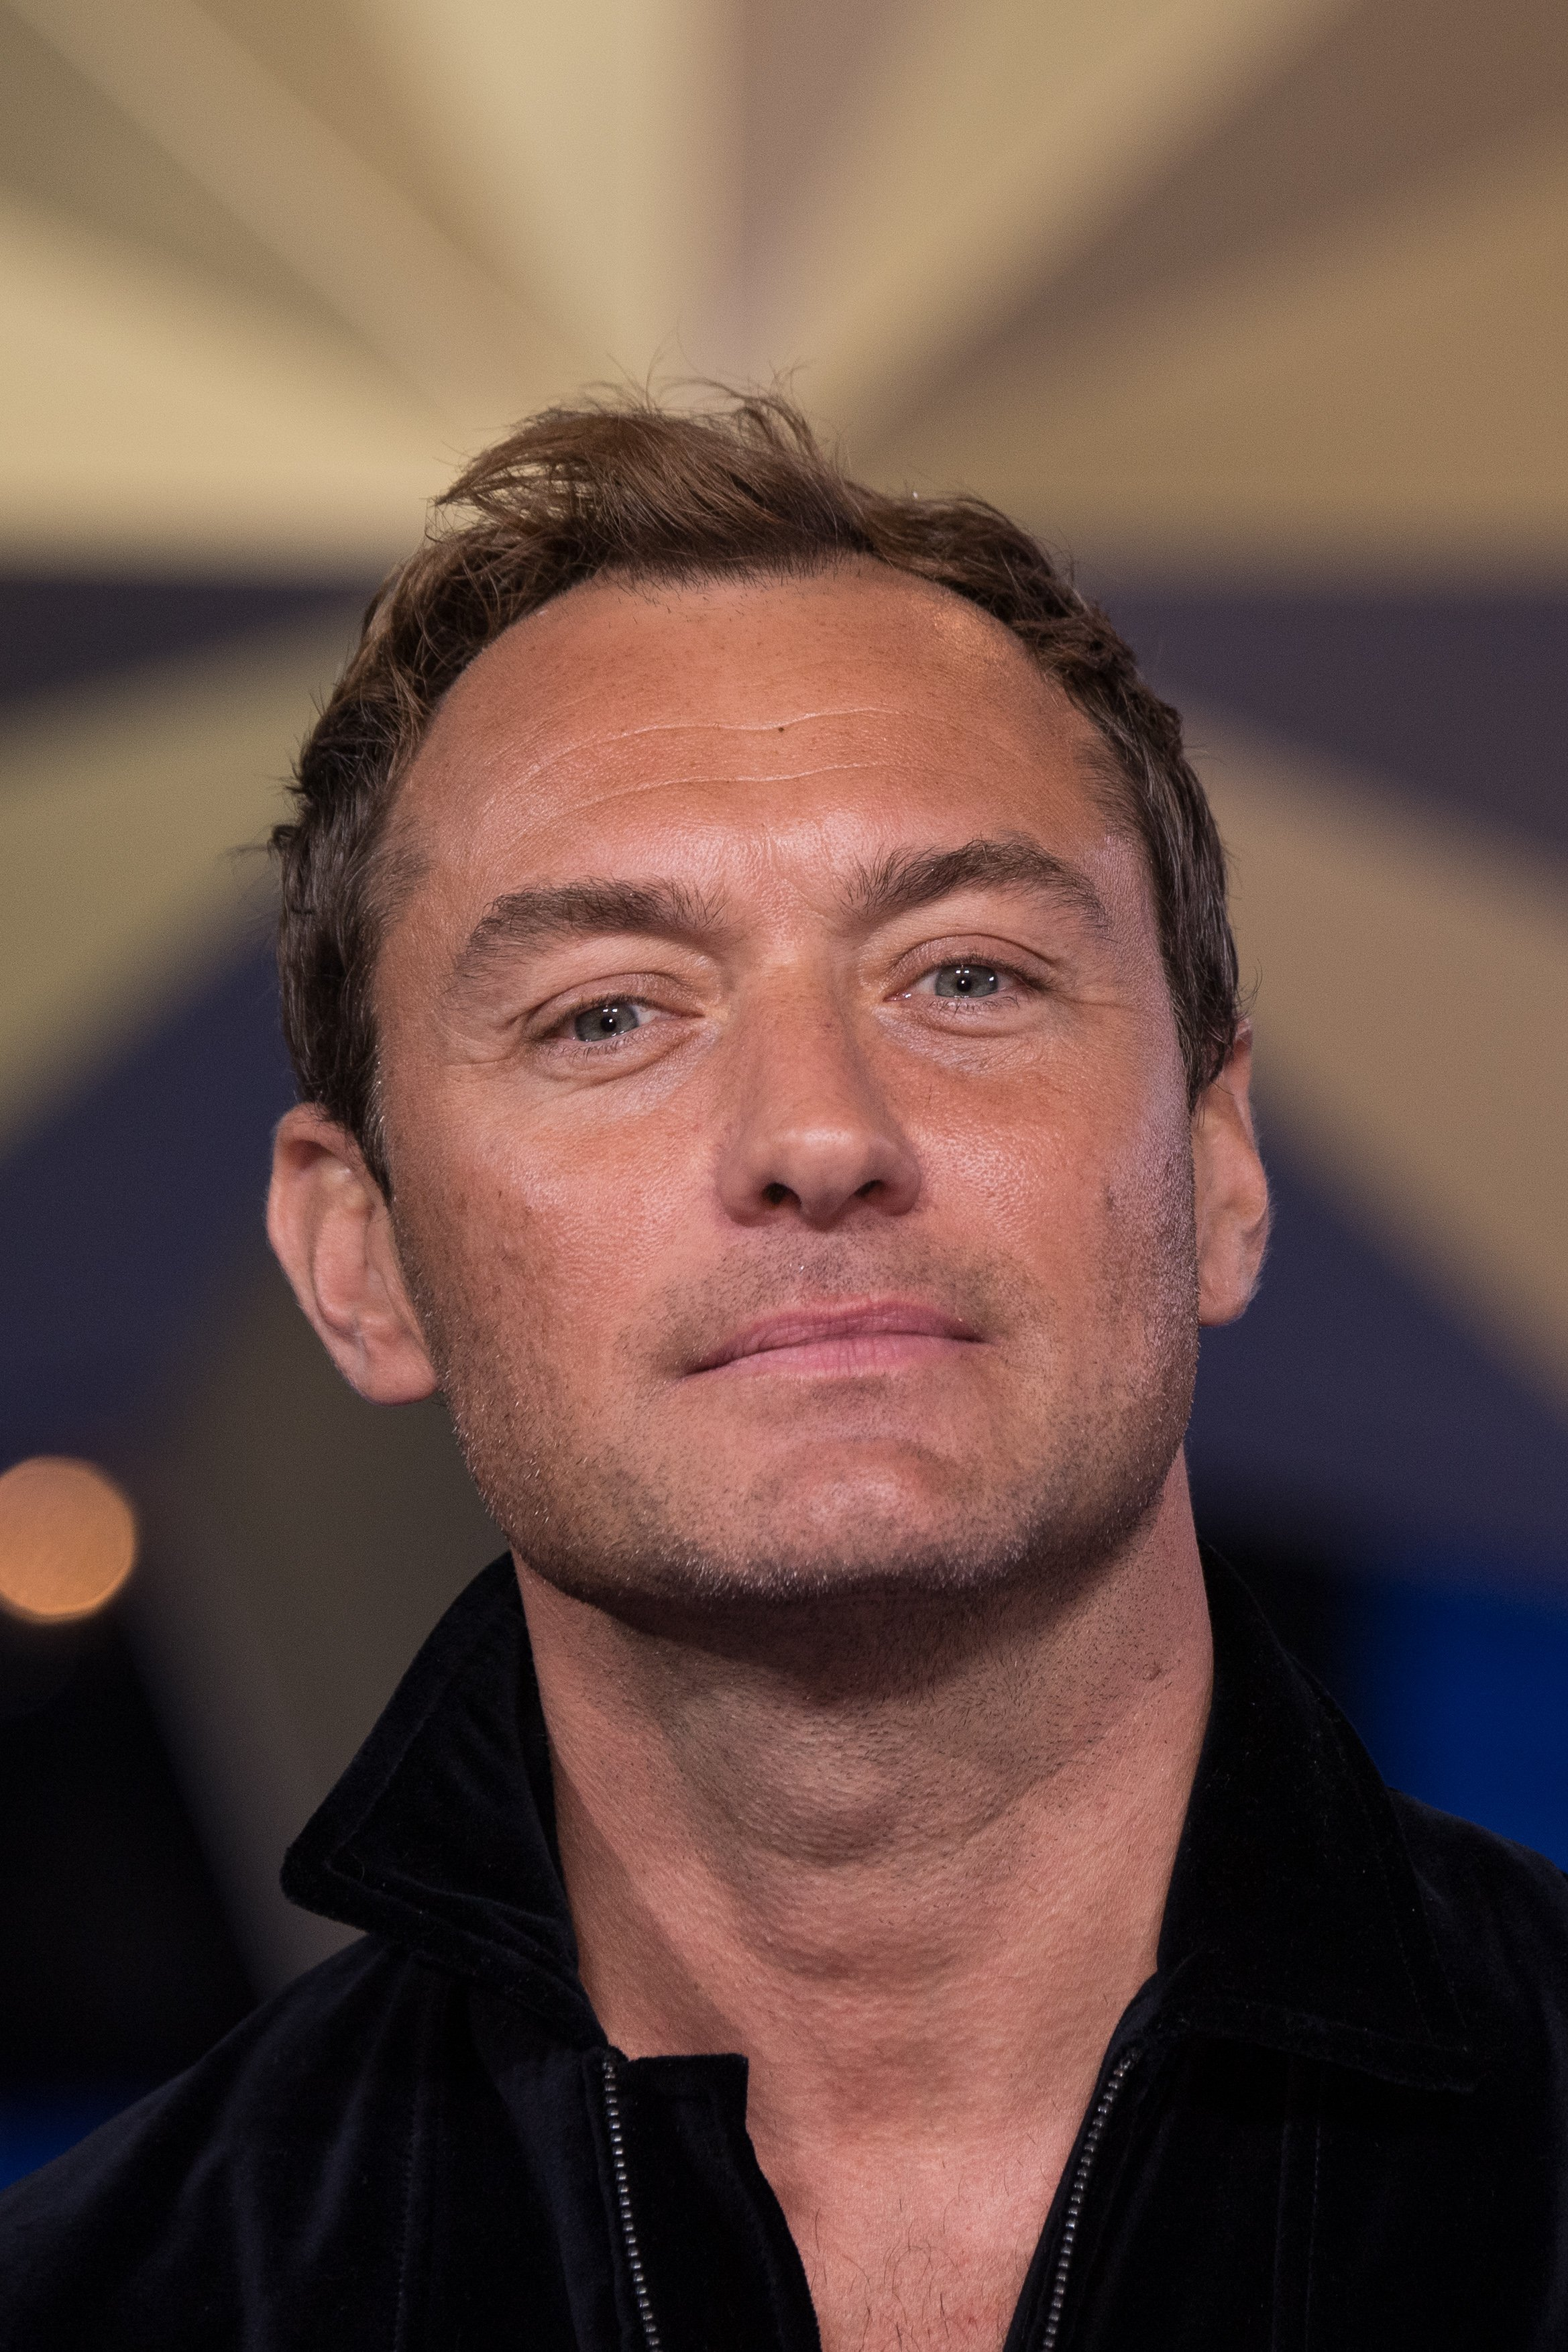 Image Source: Getty Images/Jude Law at a movie event